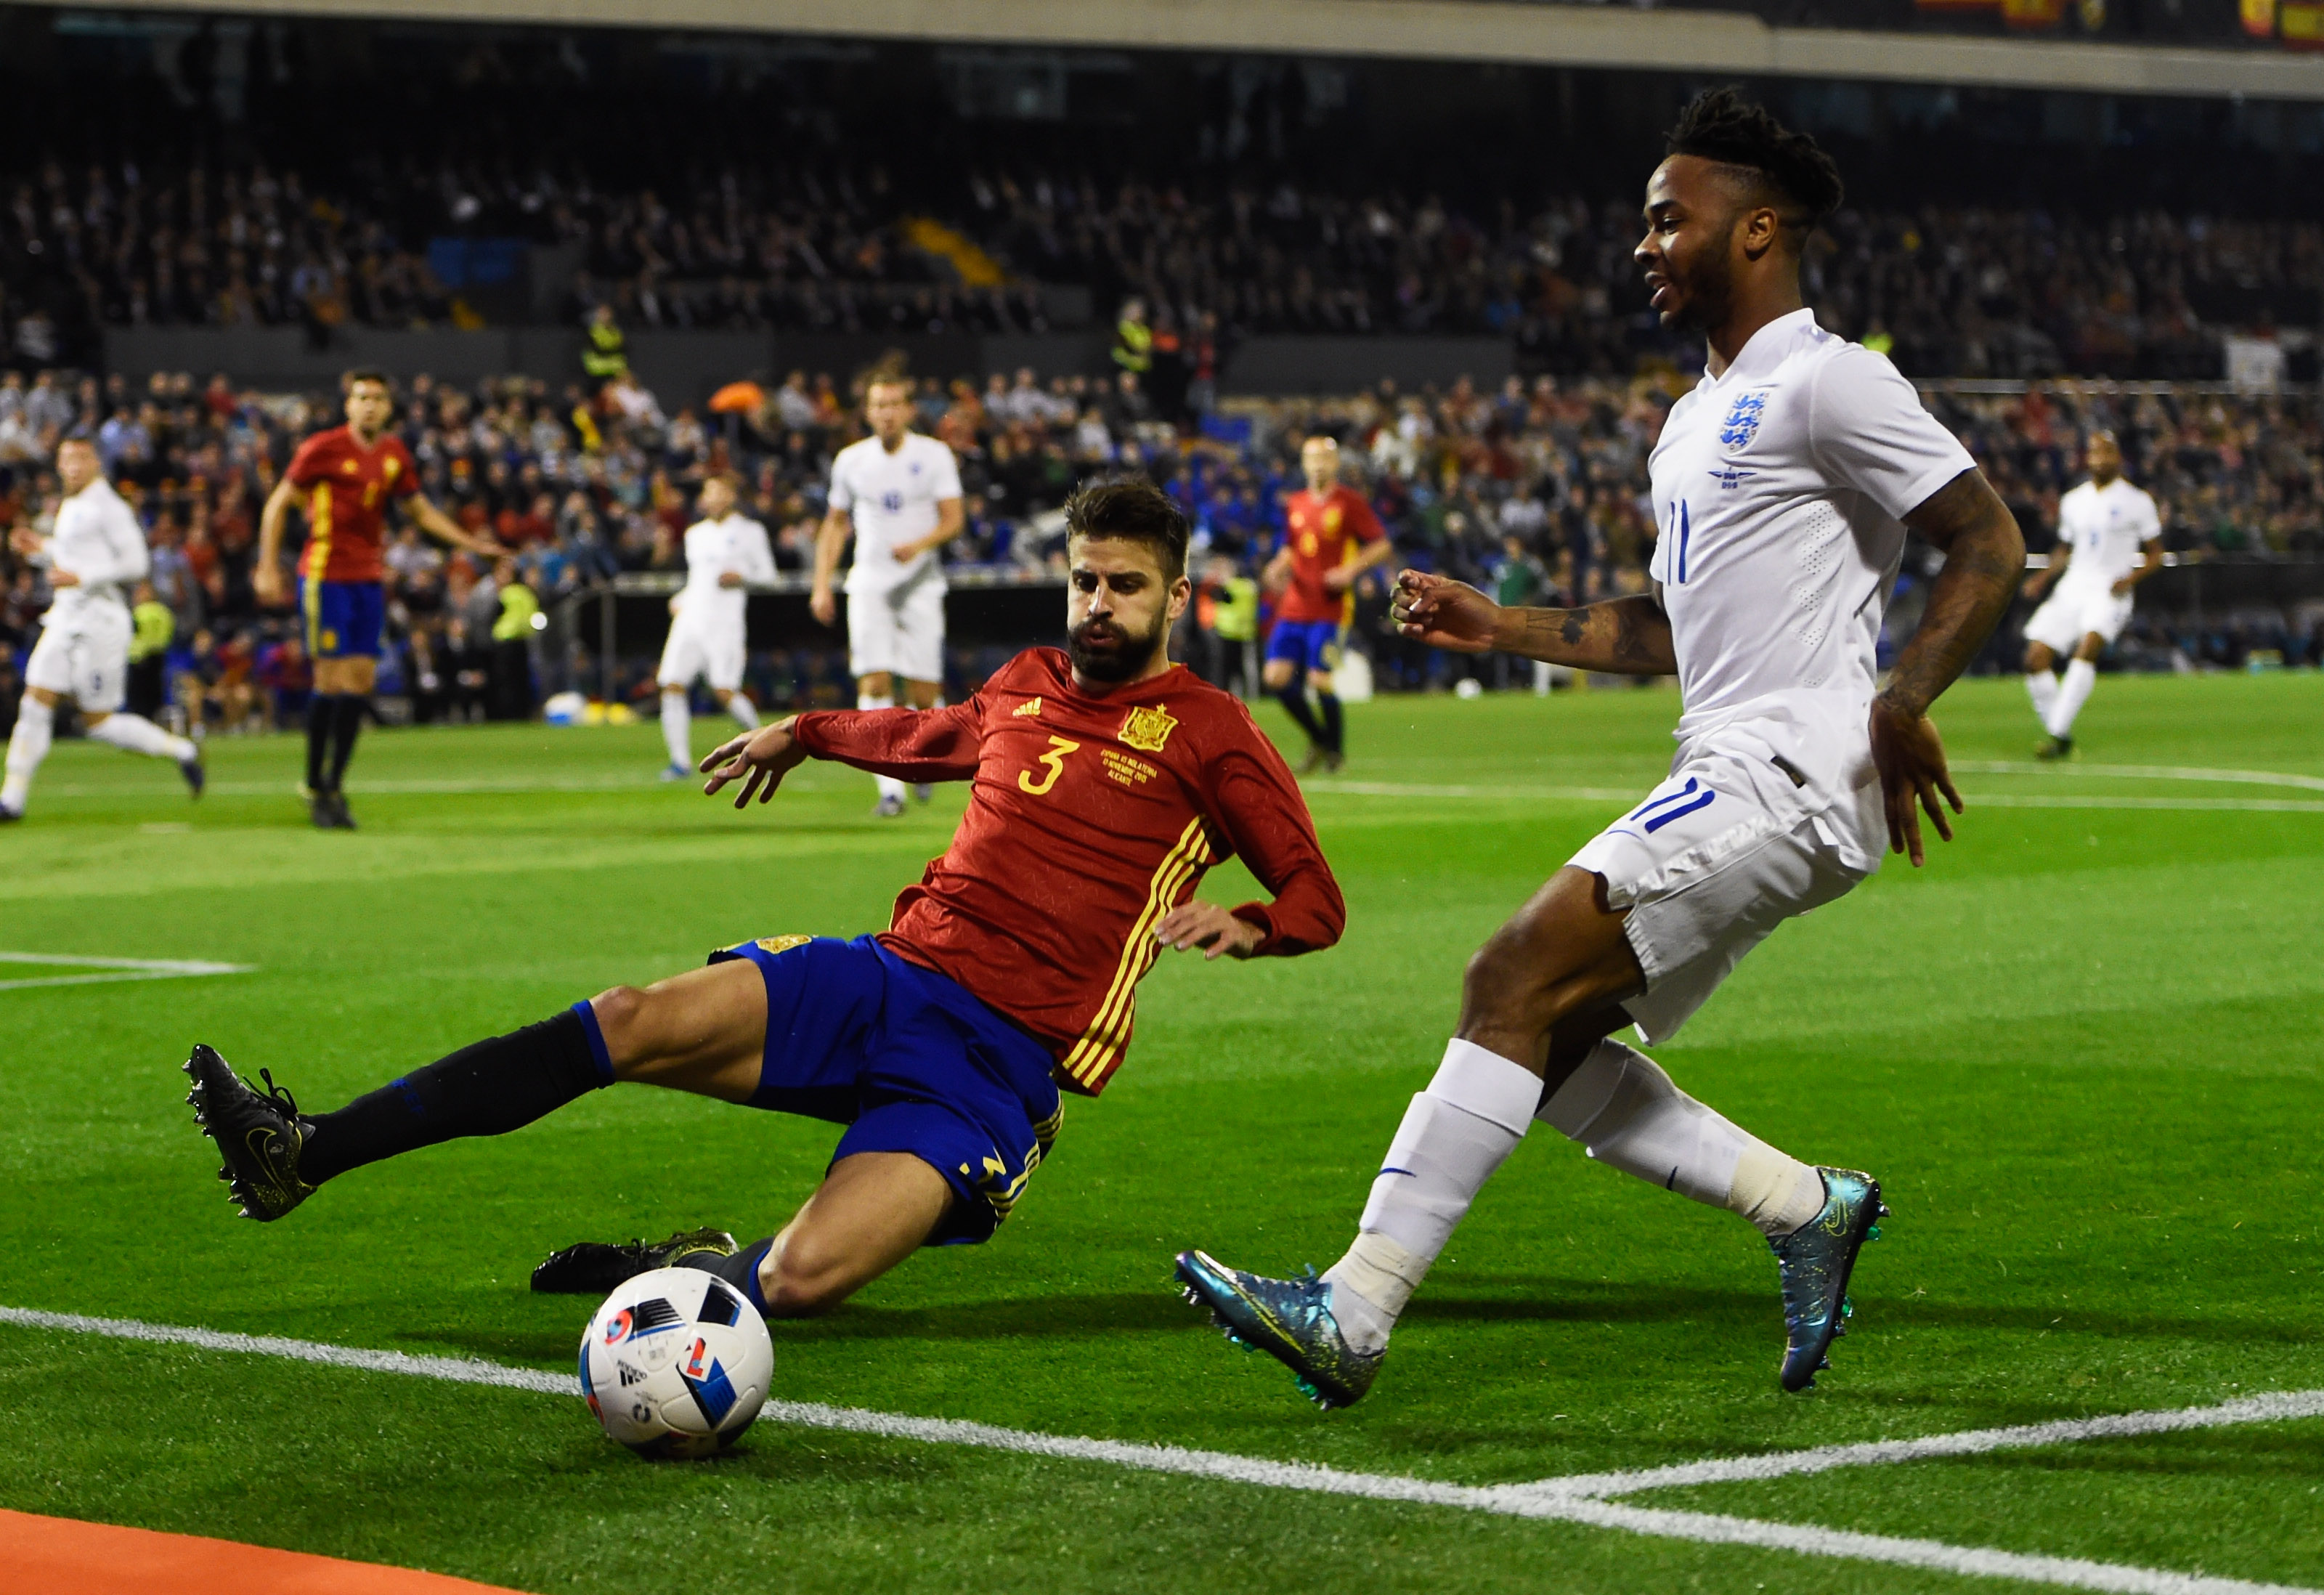 ALICANTE, SPAIN - NOVEMBER 13: Raheem Sterling of England is faced by Gerard Pique of Spain during the international friendly match between Spain and England at Jose Rico Perez Stadium on November 13, 2015 in Alicante, Spain. (Photo by Mike Hewitt/Getty Images)